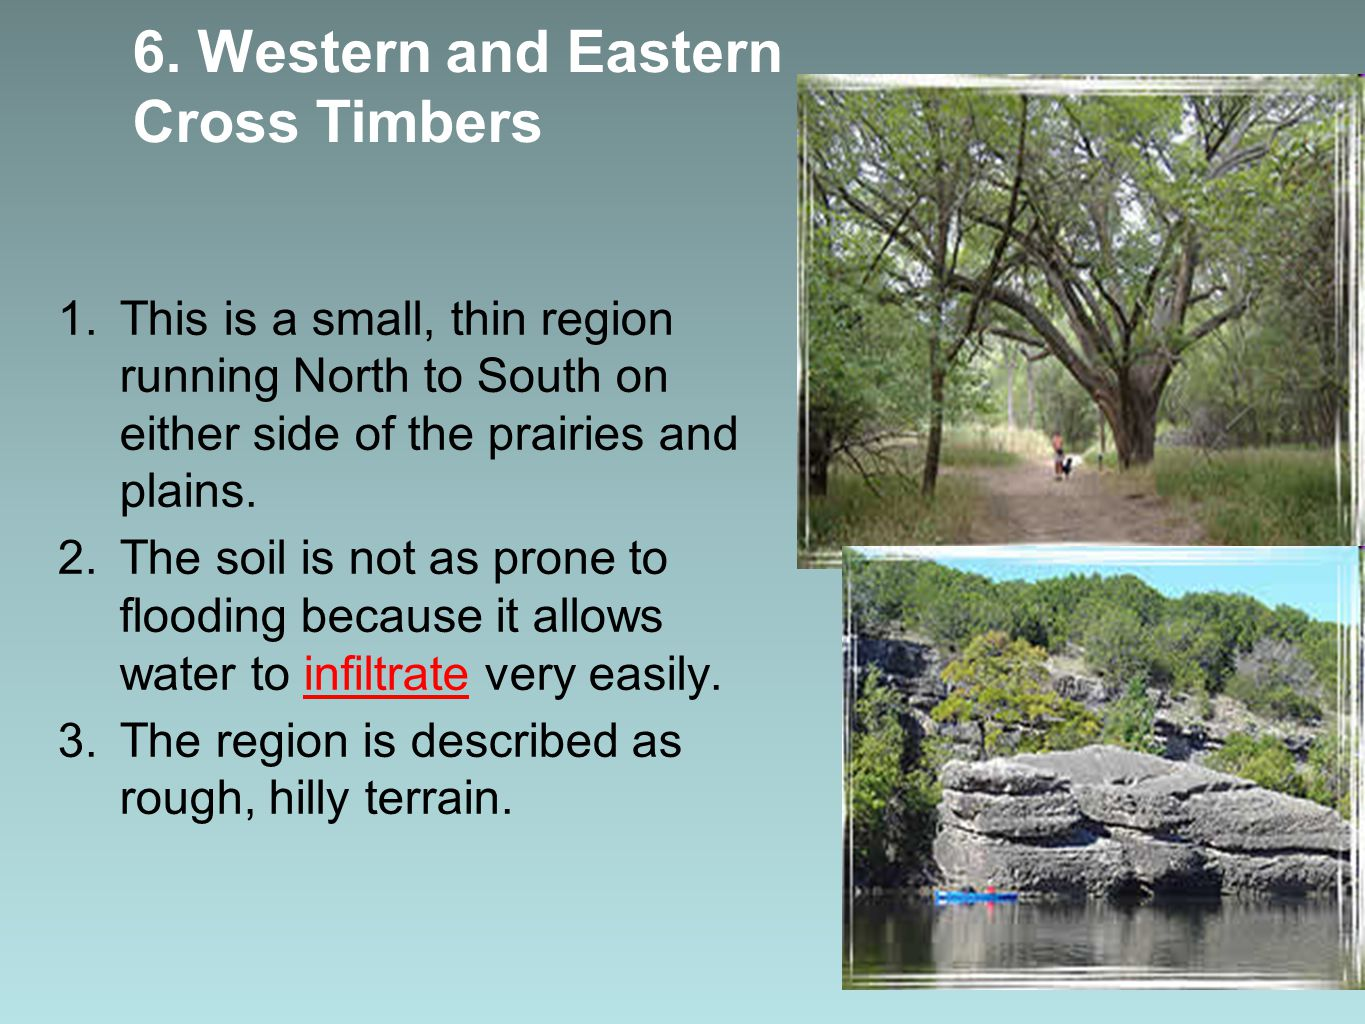 6. Western and Eastern Cross Timbers